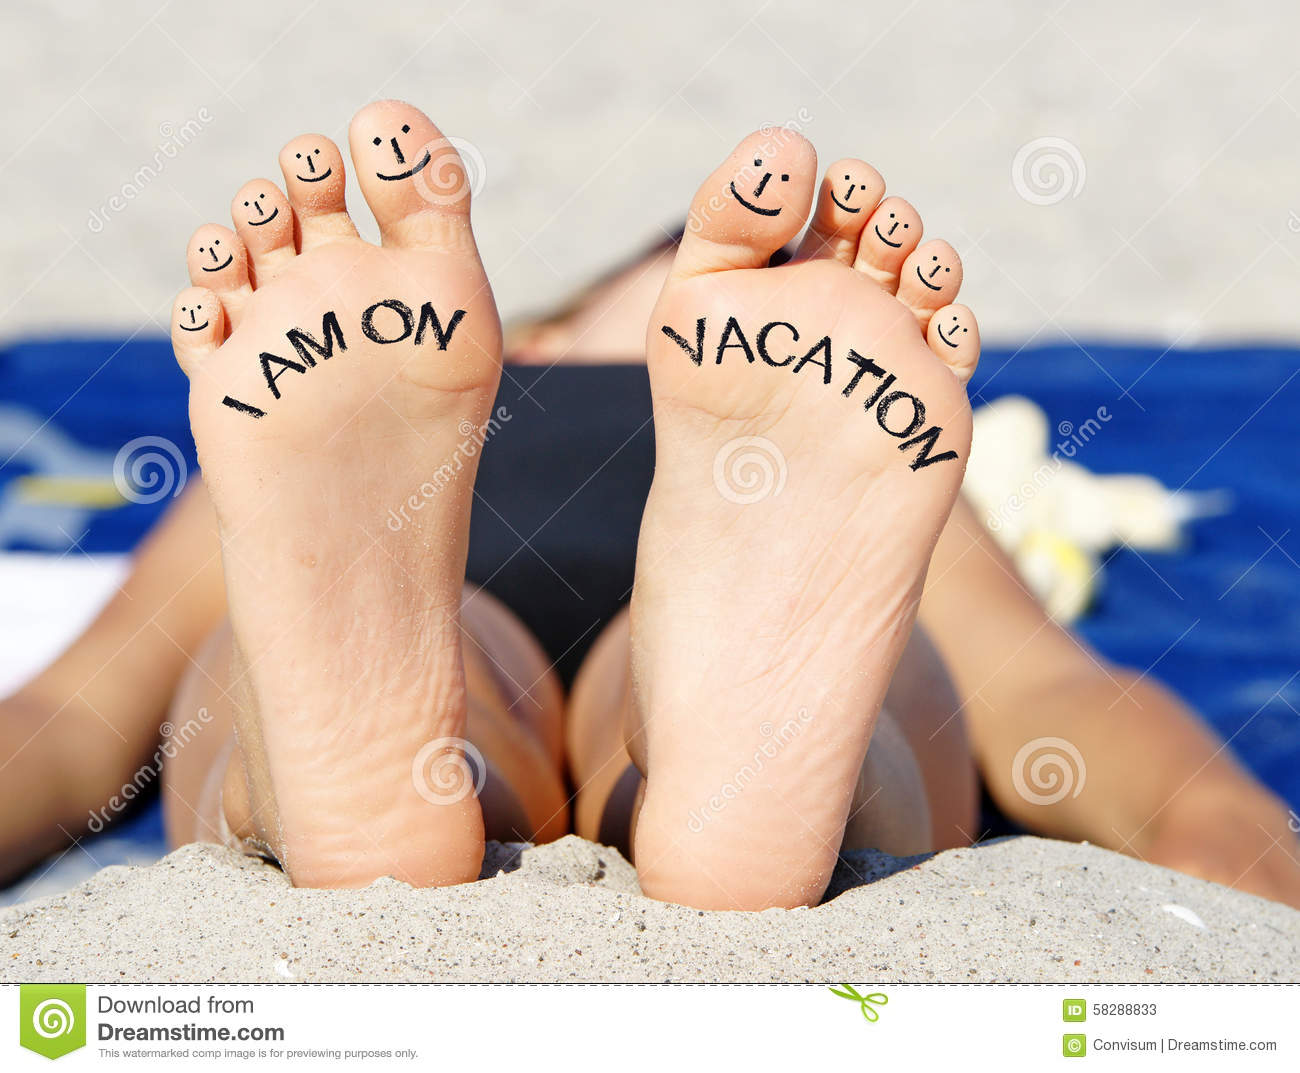 Feet On Vacation Stock Image Image Of Relax, Relaxing -1865